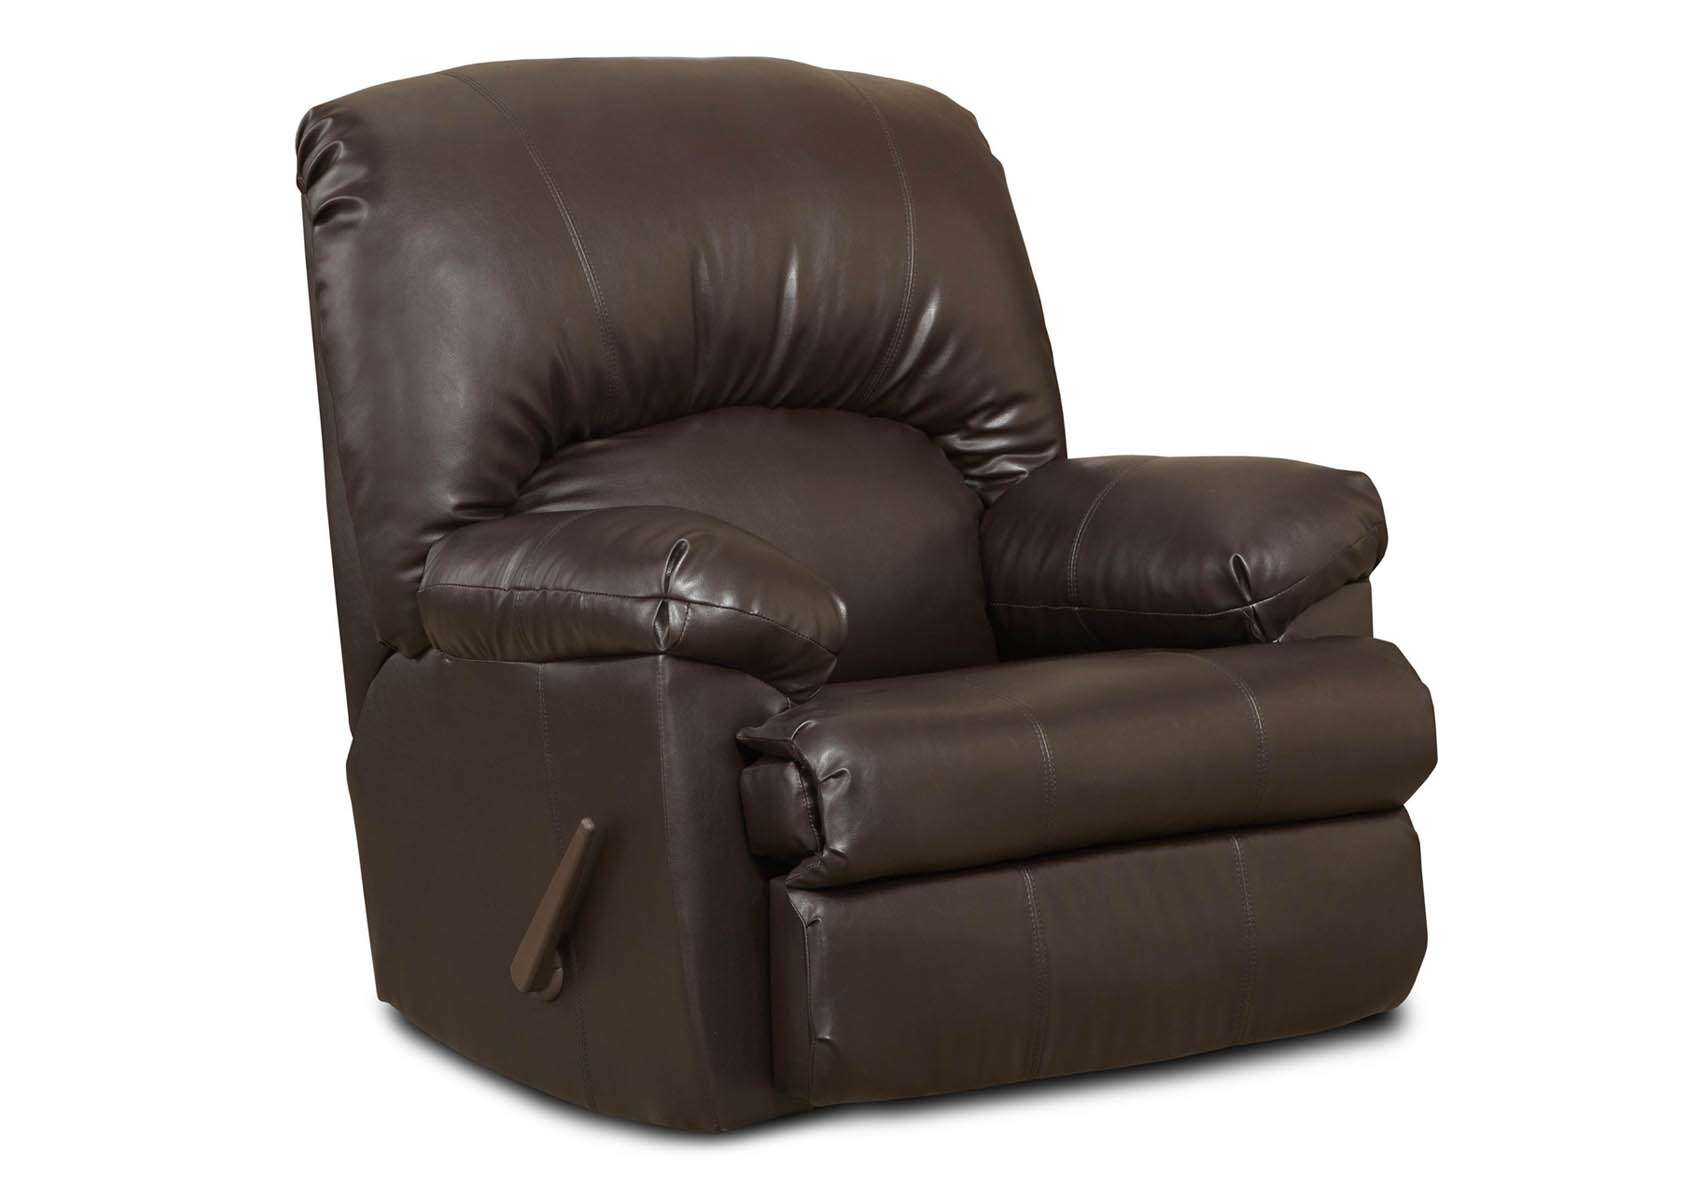 Charles Brown Rocker Recliner